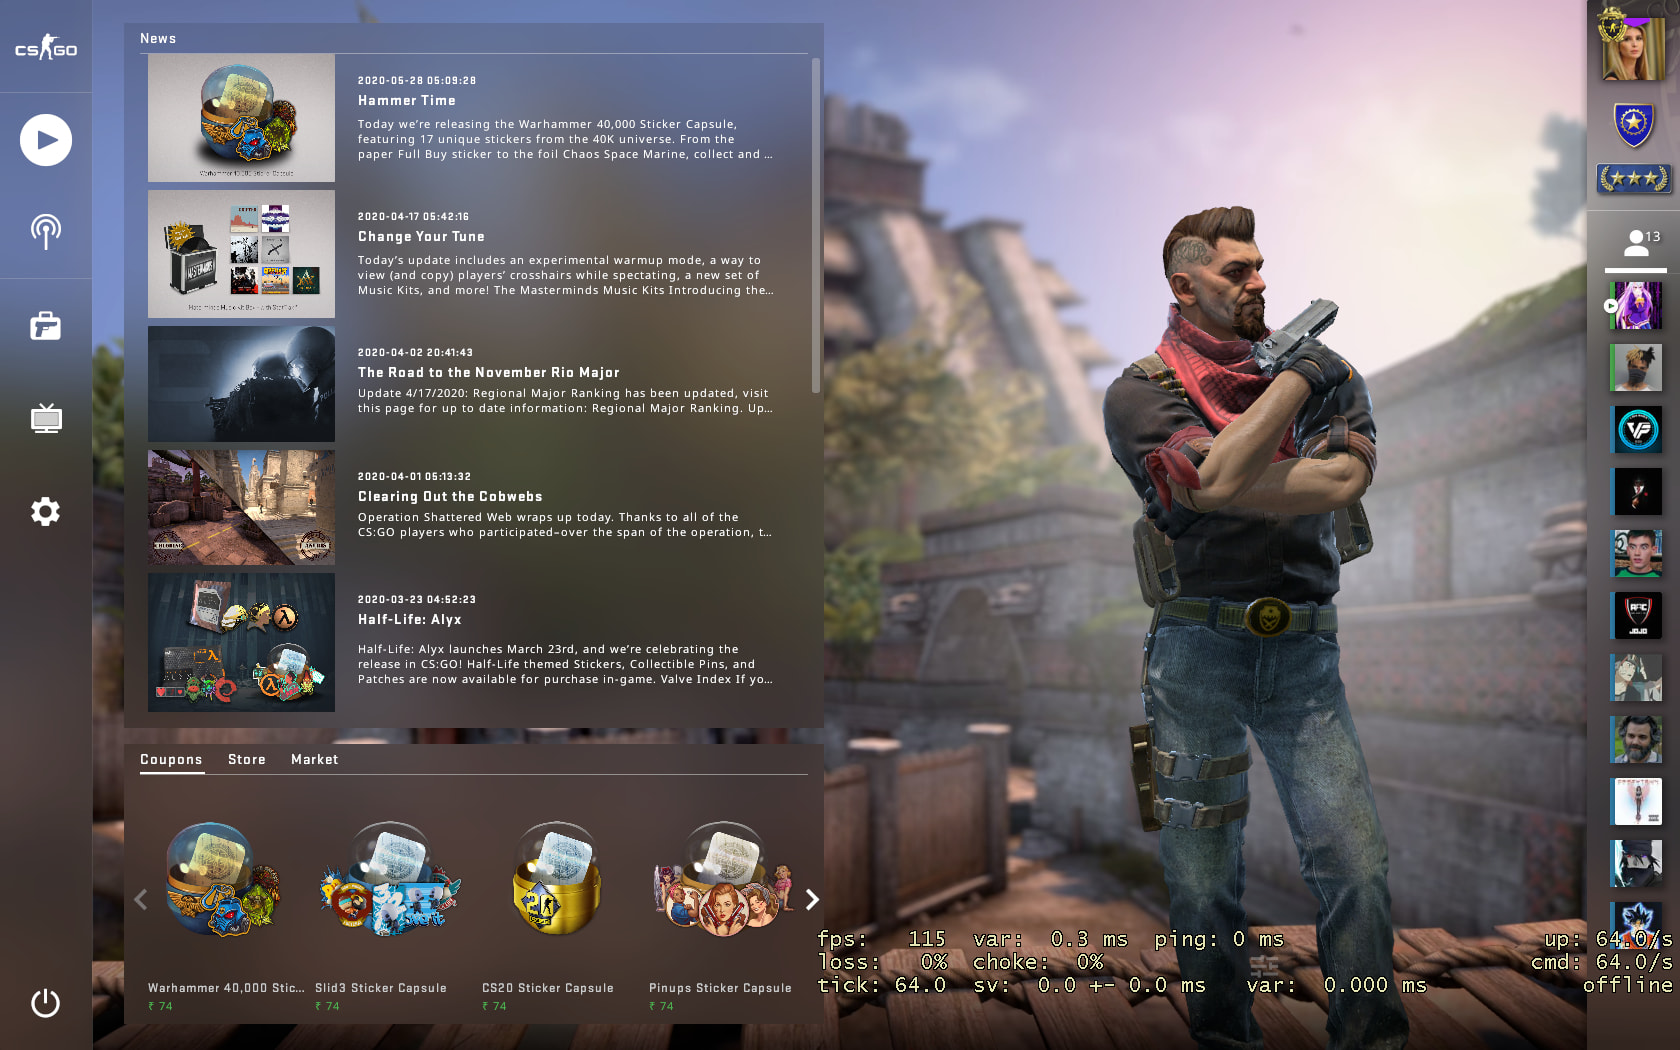 C4 Kill Feed, Improved Grenade Mechanics, Background Selection added In New BIG CSGO UPDATE 6